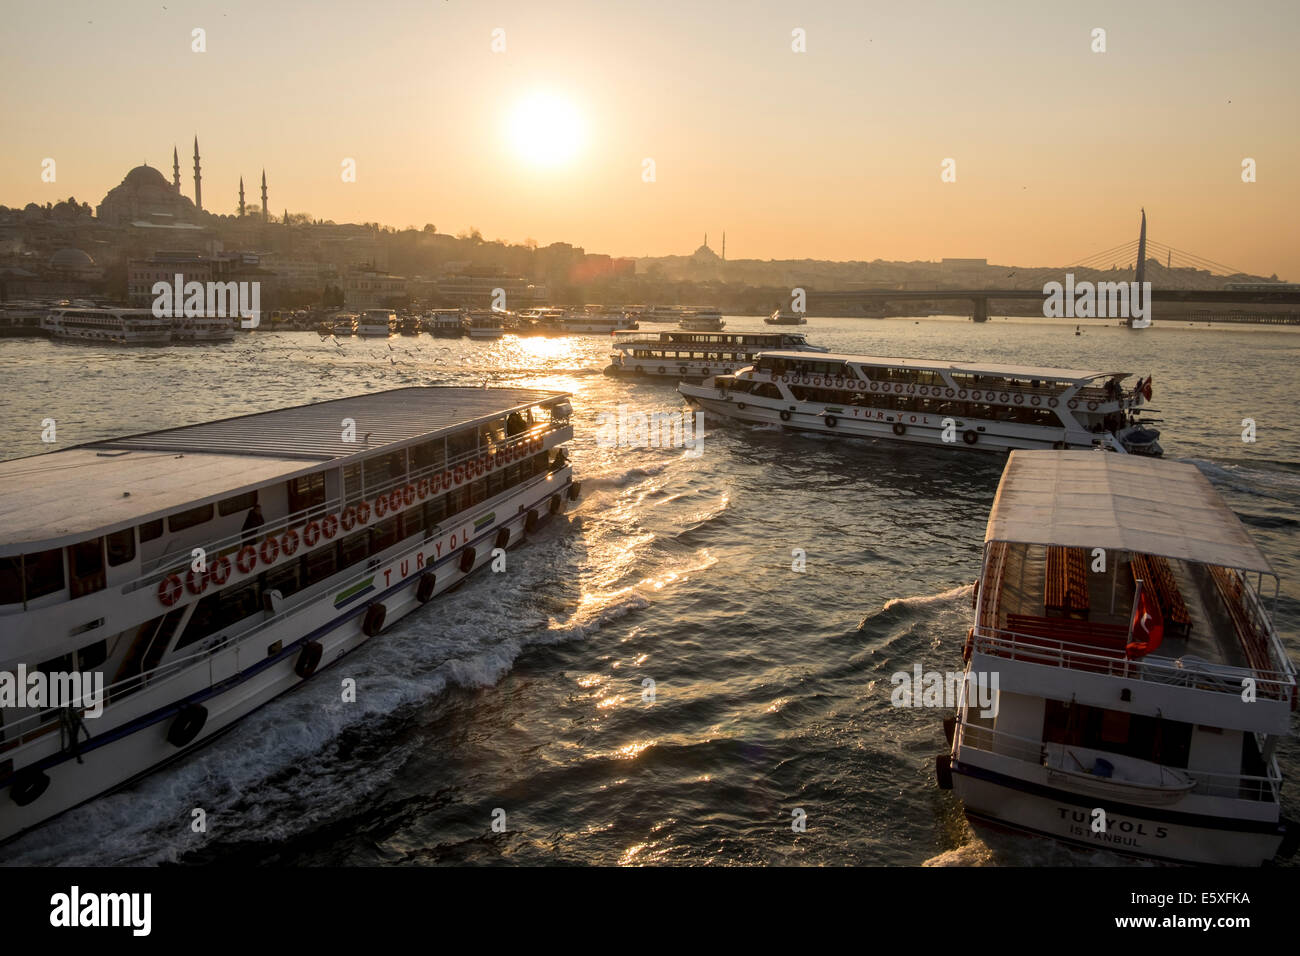 Passenger ships floating on the Golden Horn as the Yavuz Sultan Selim Cami stands out in the horizon in Istanbul, - Stock Image